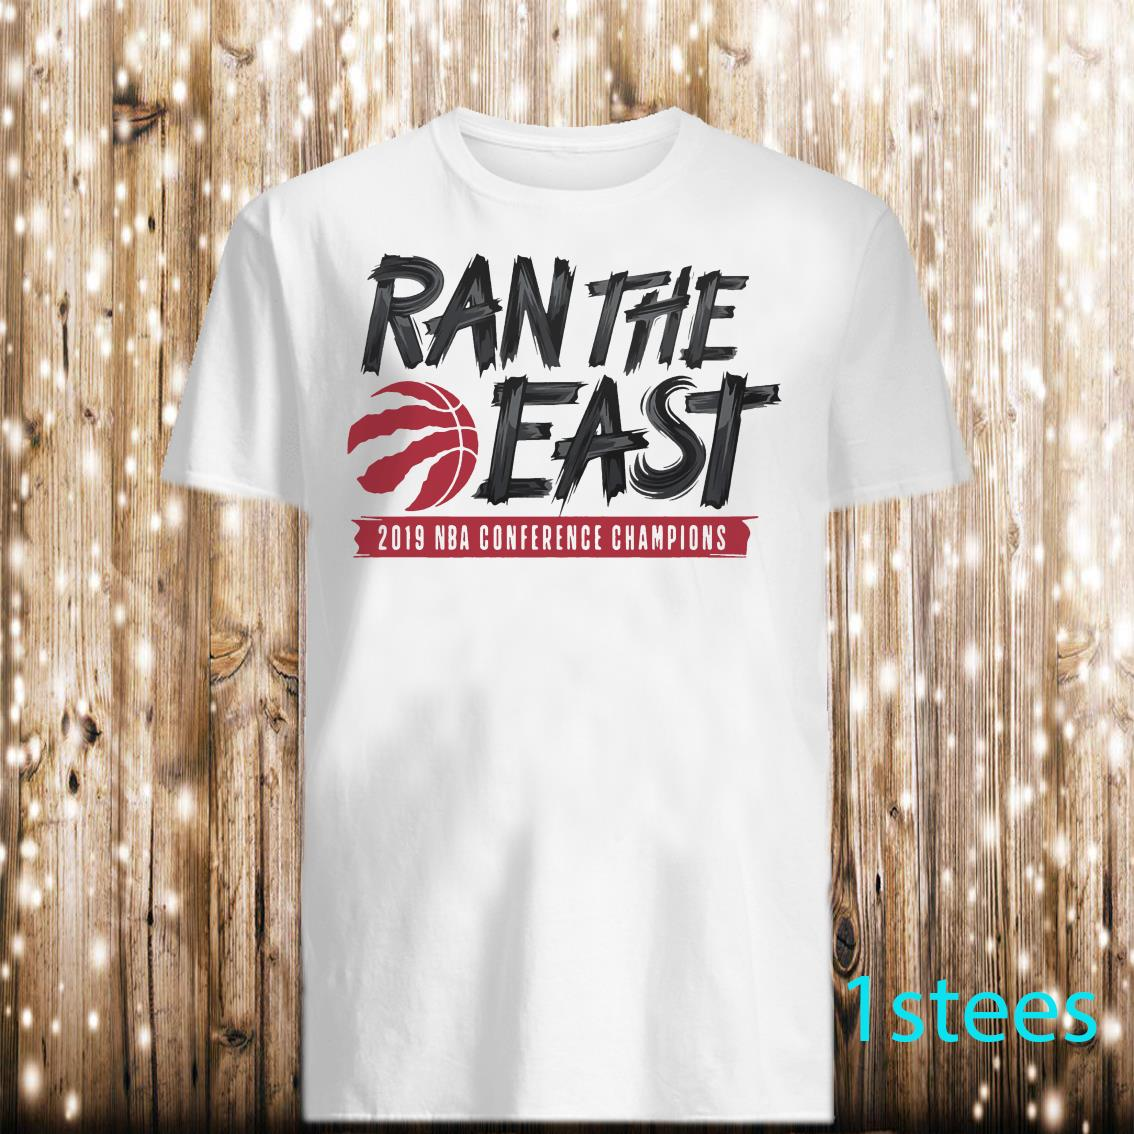 Toronto Raptors Ran The East 2019 NBA Conference Champions Shirt